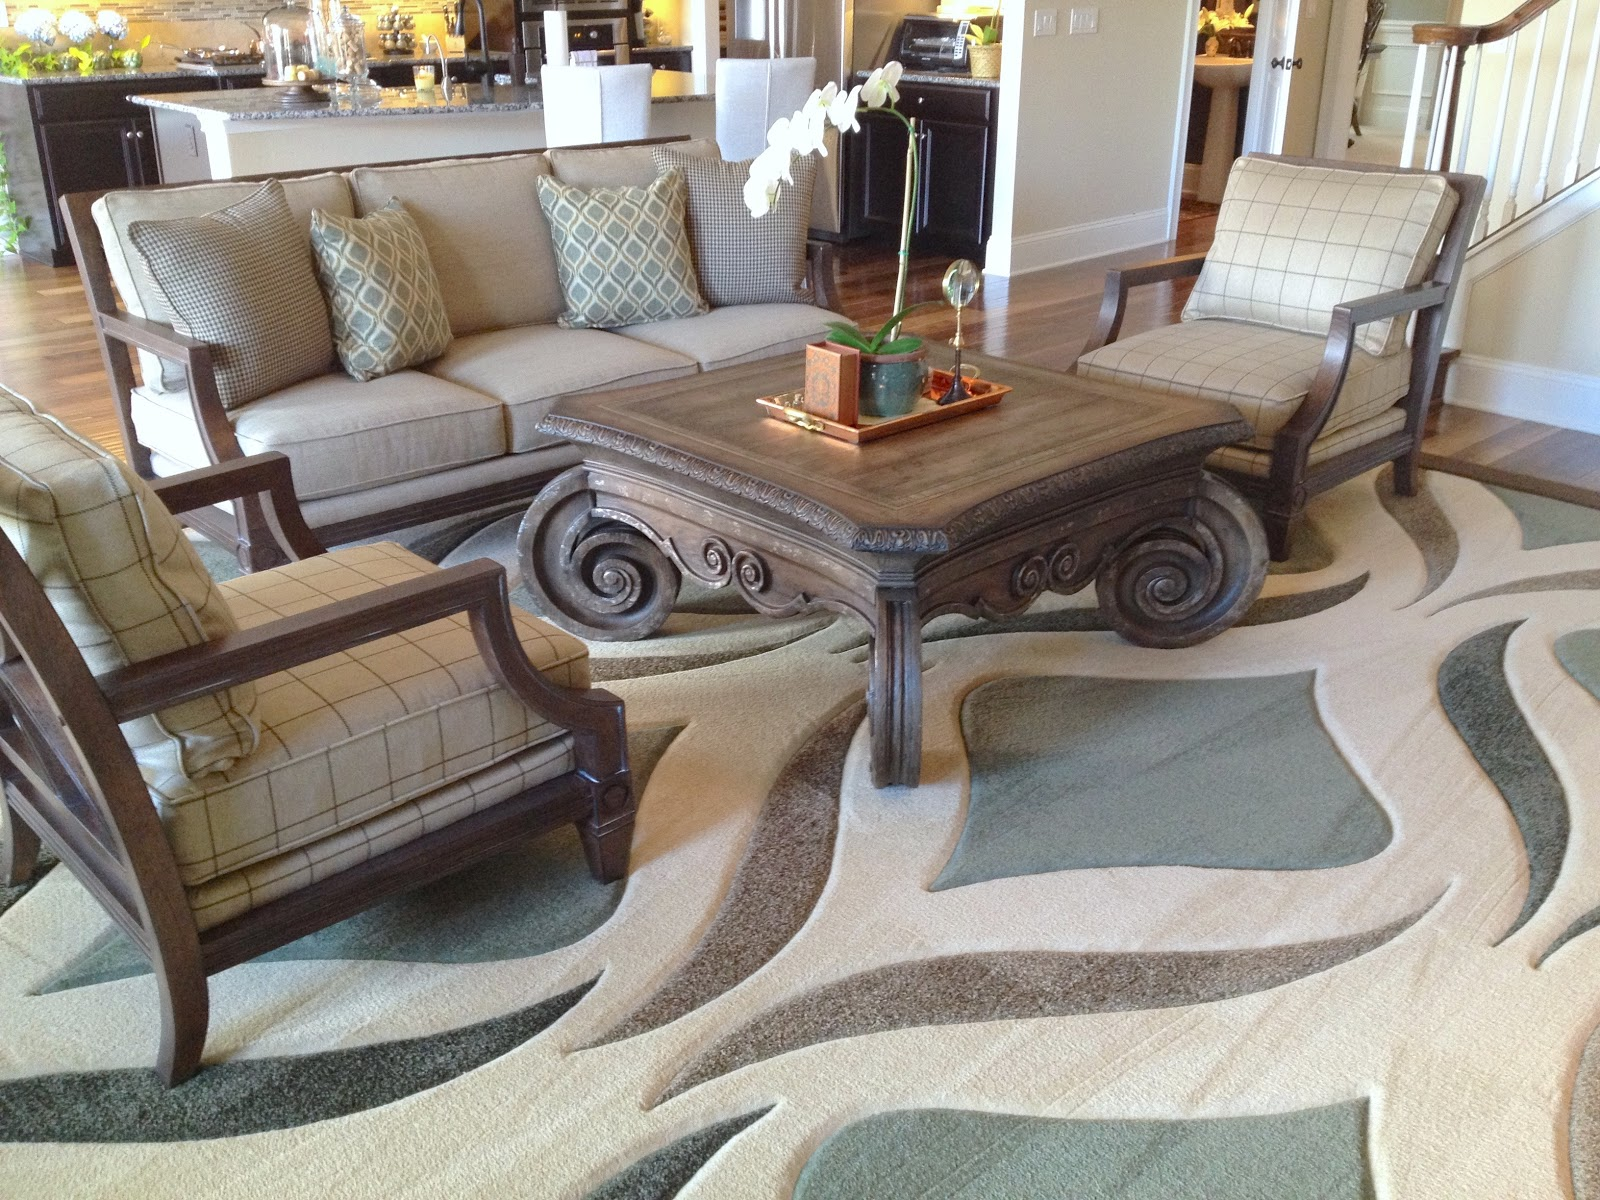 Woodchuck s Fine Furniture and Decor Woodchuck s Furniture Grand